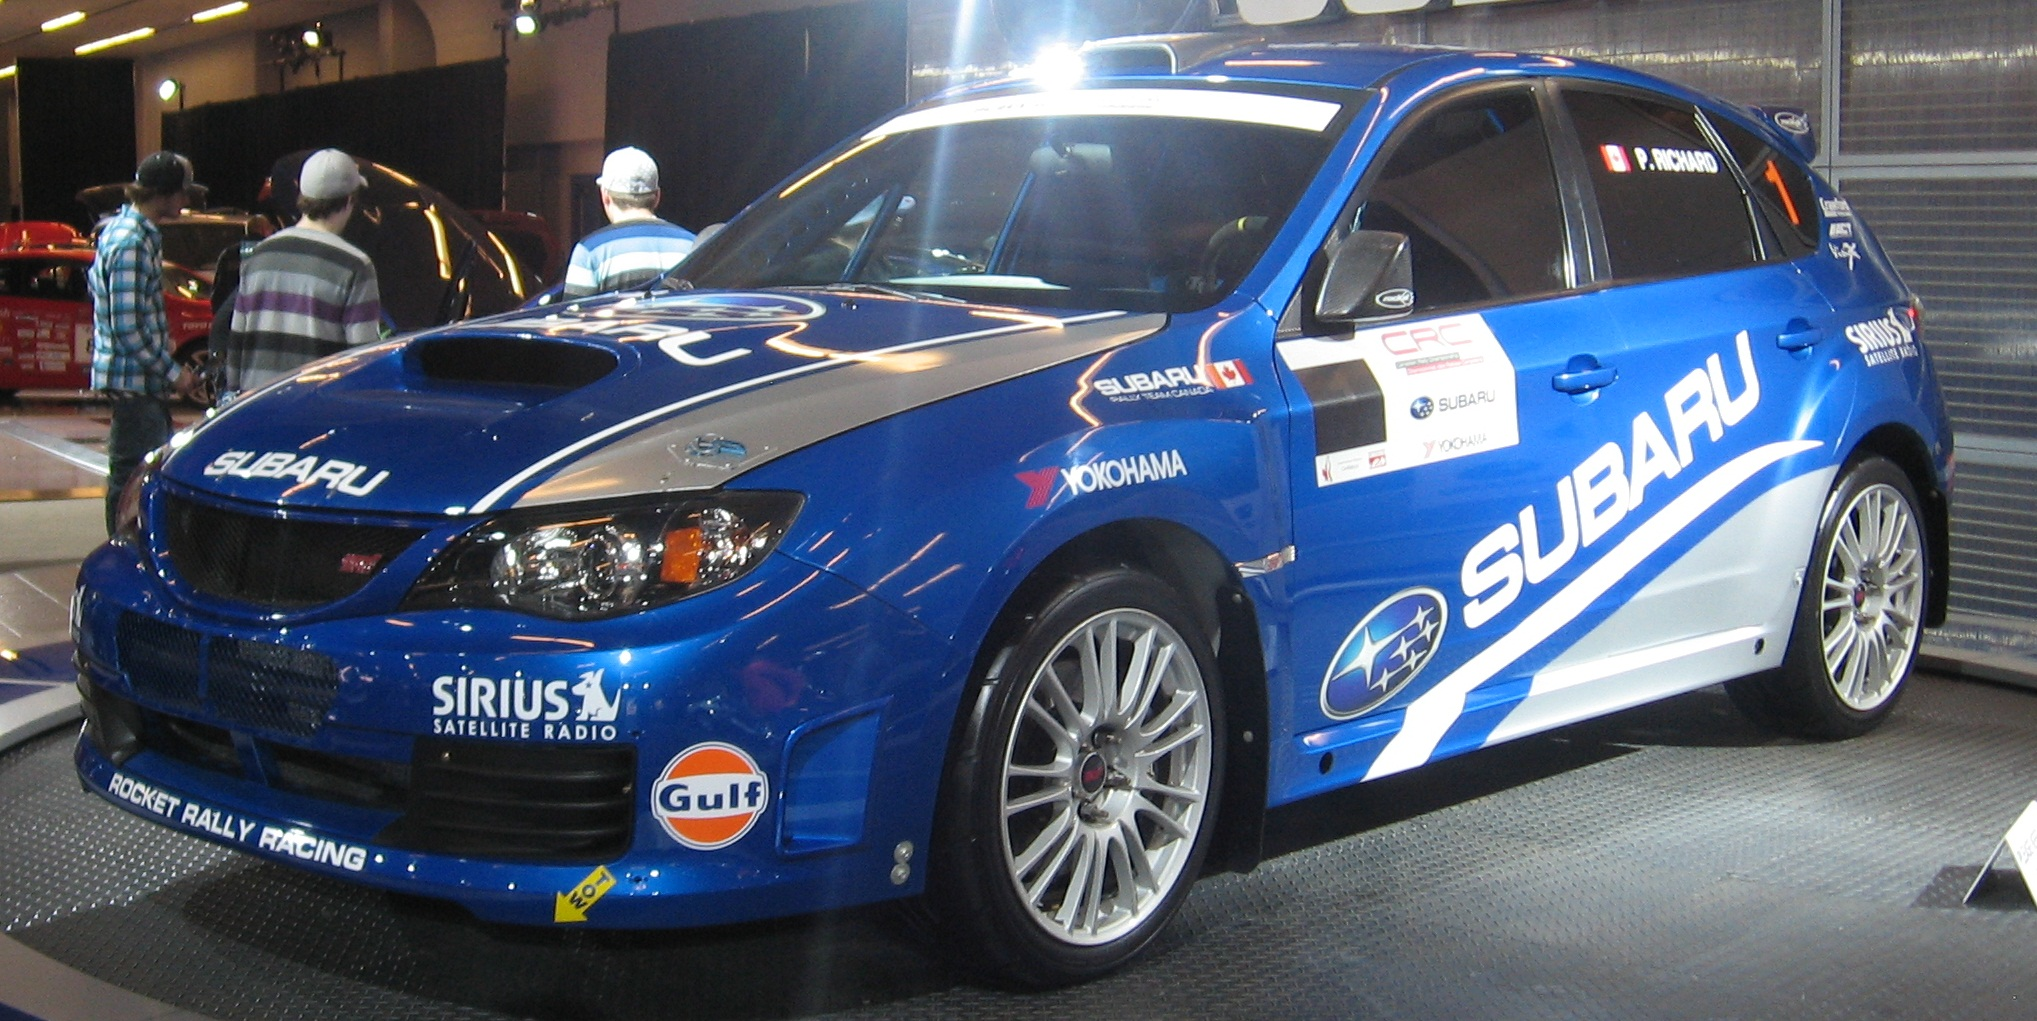 File Subaru Impreza Wrx Sti Competition Car Mias 11 Jpg